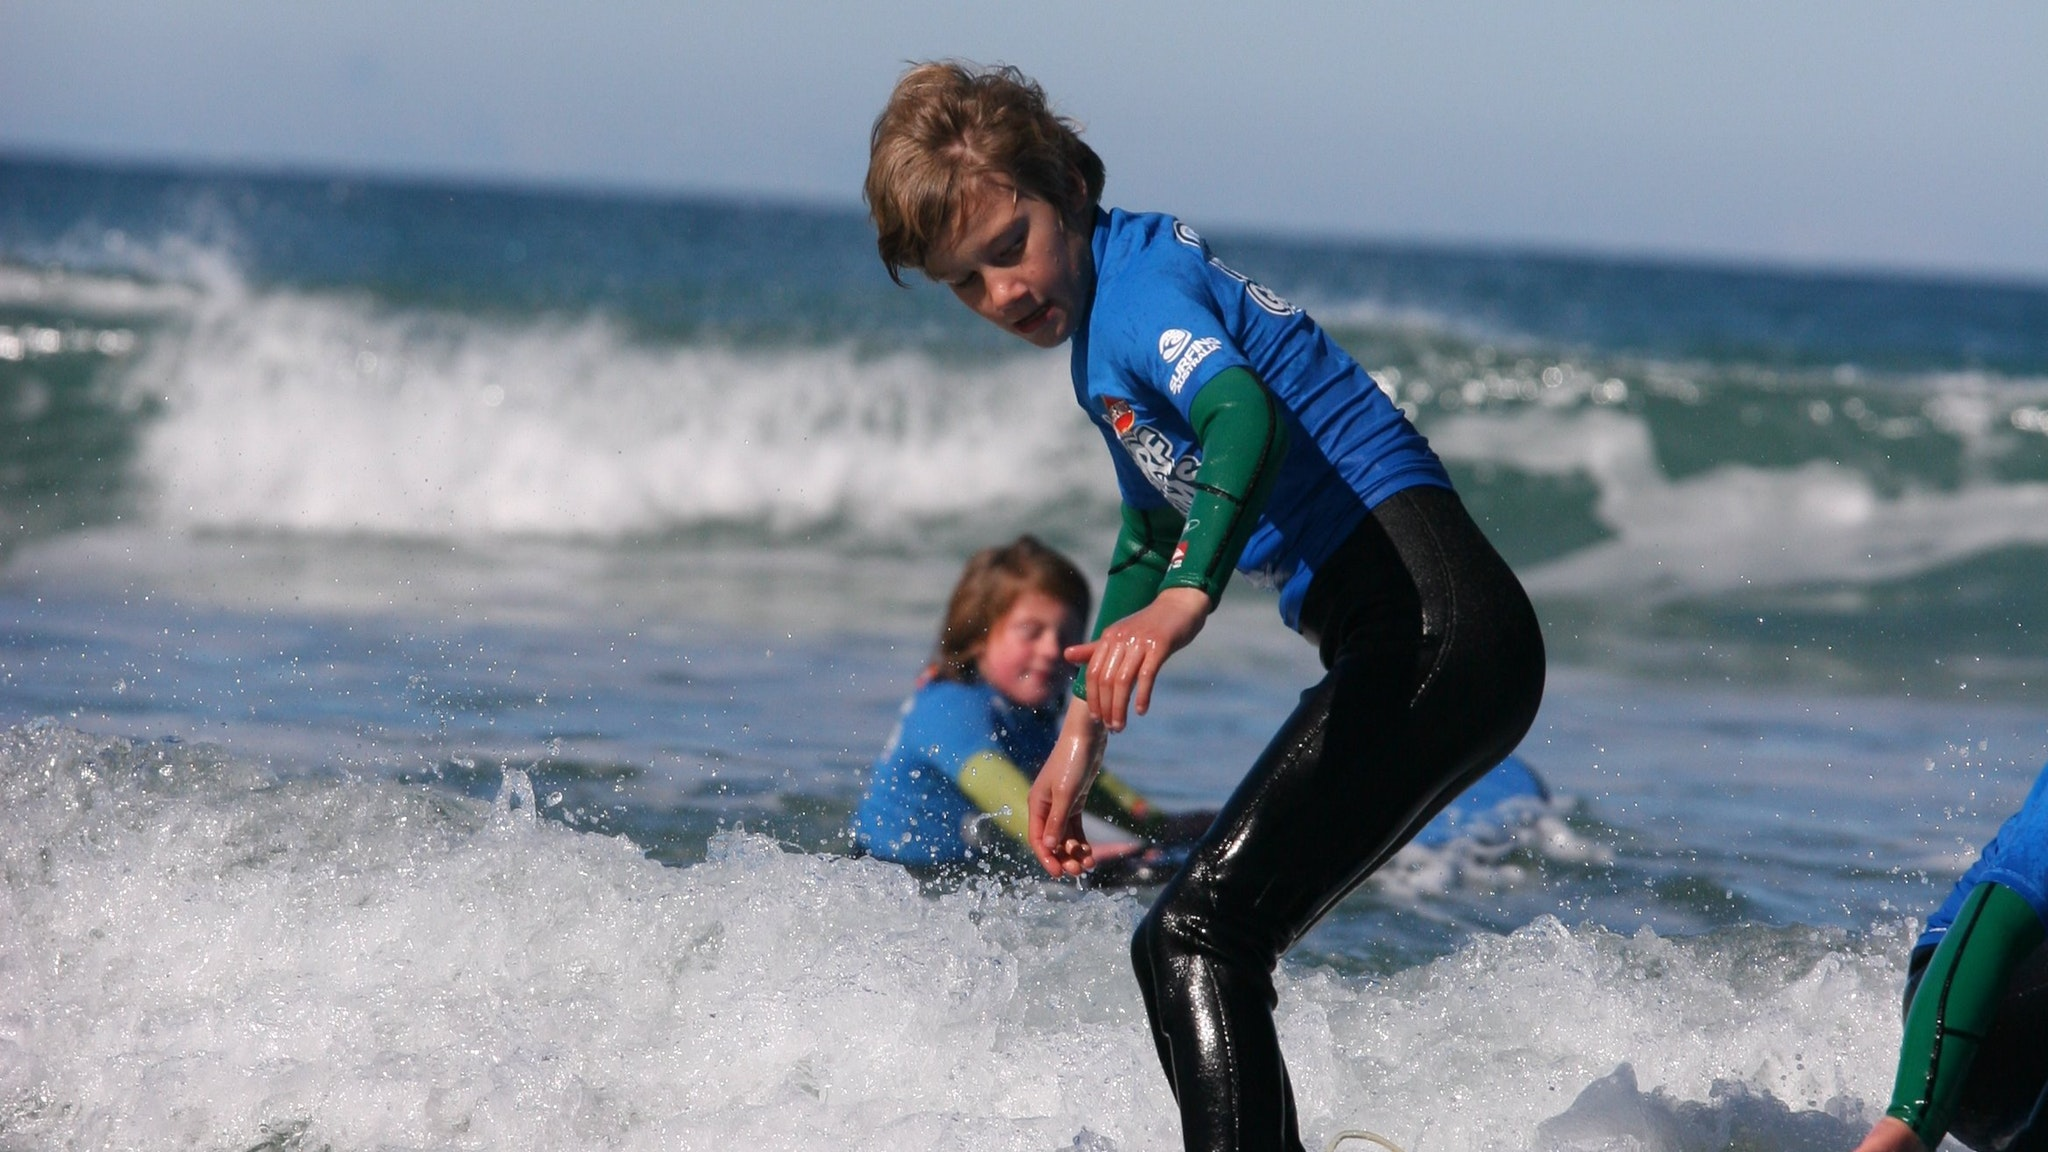 Go Ride A Wave - Lorne